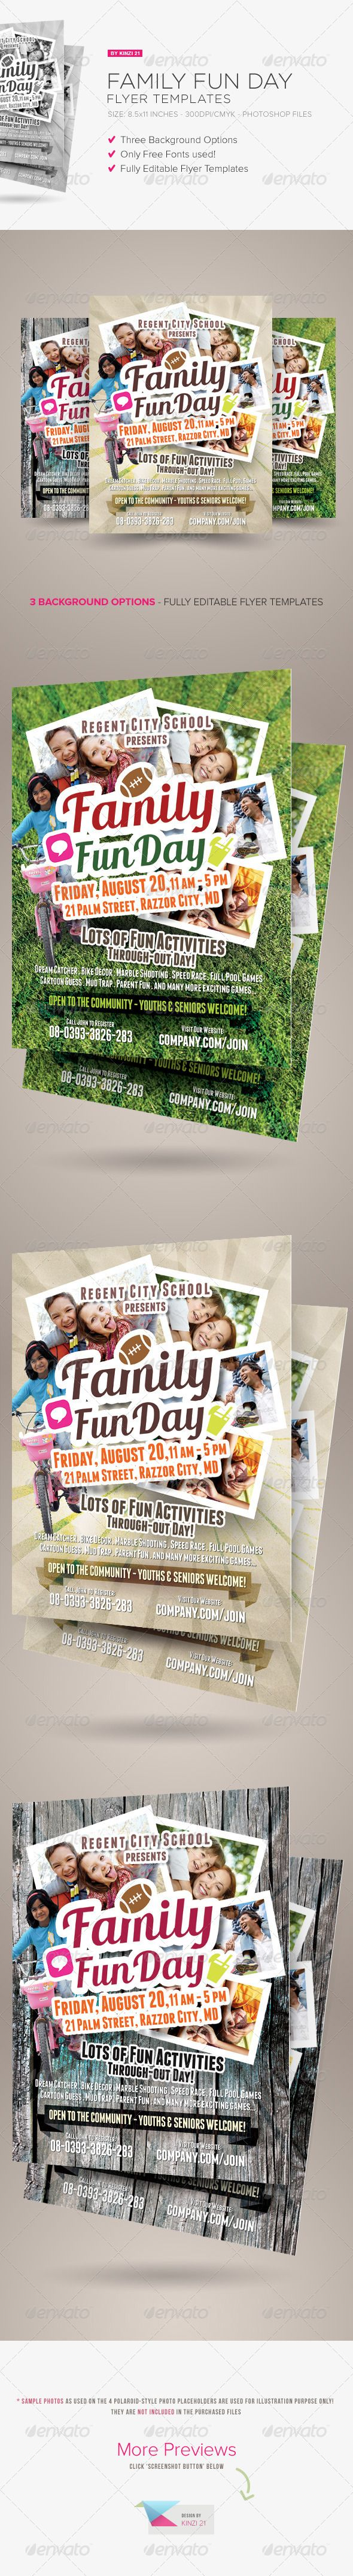 Family Fun Day Flyers | Flyer template